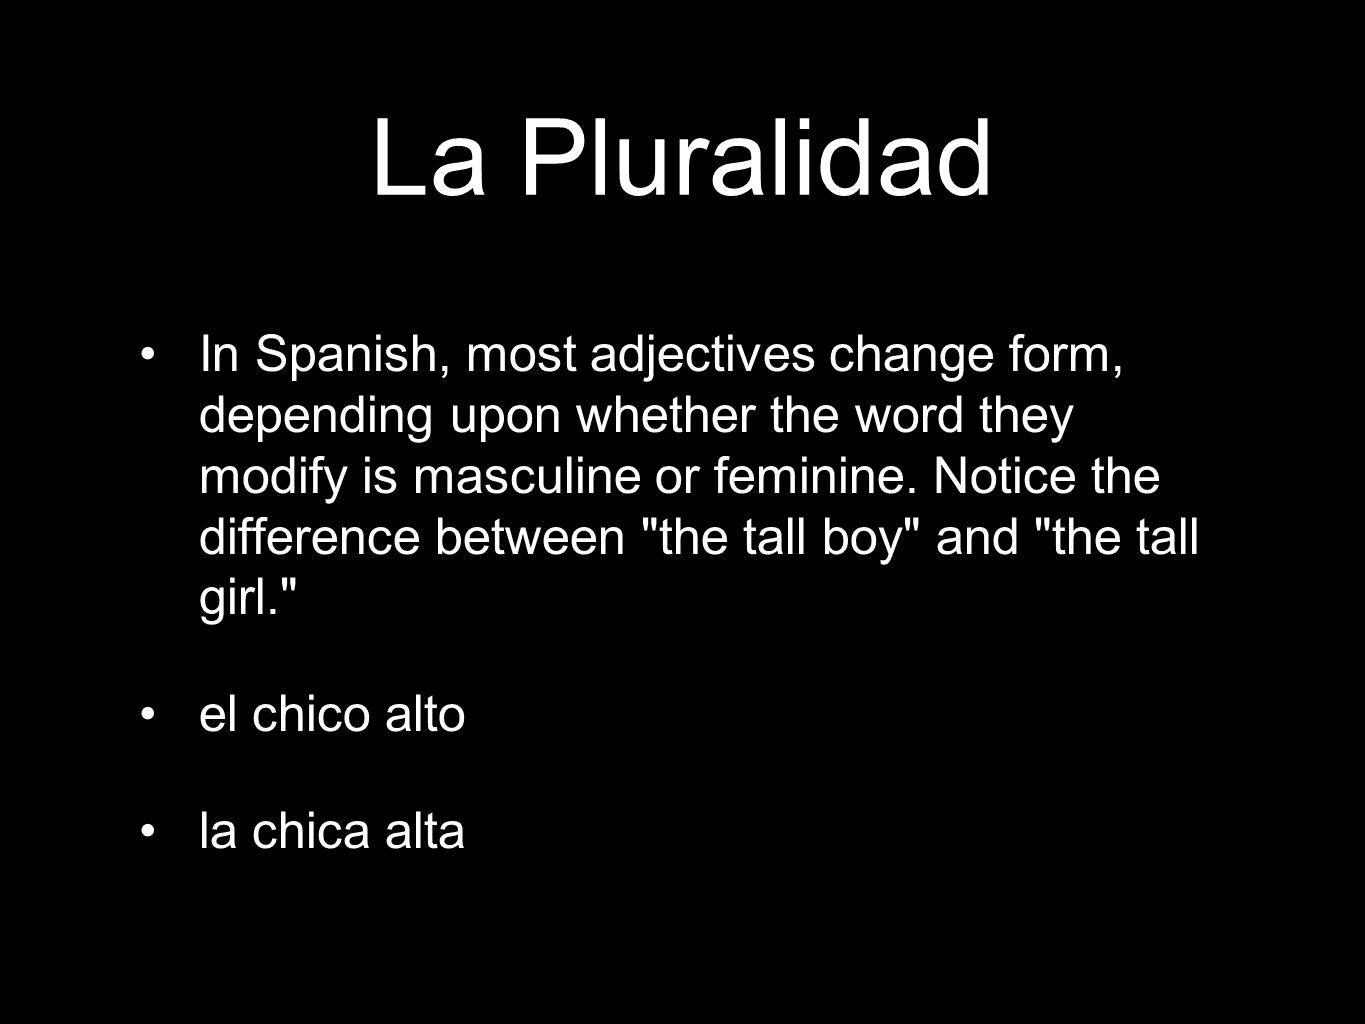 La Pluralidad In Spanish, most adjectives change form, depending upon whether the word they modify is masculine or feminine.